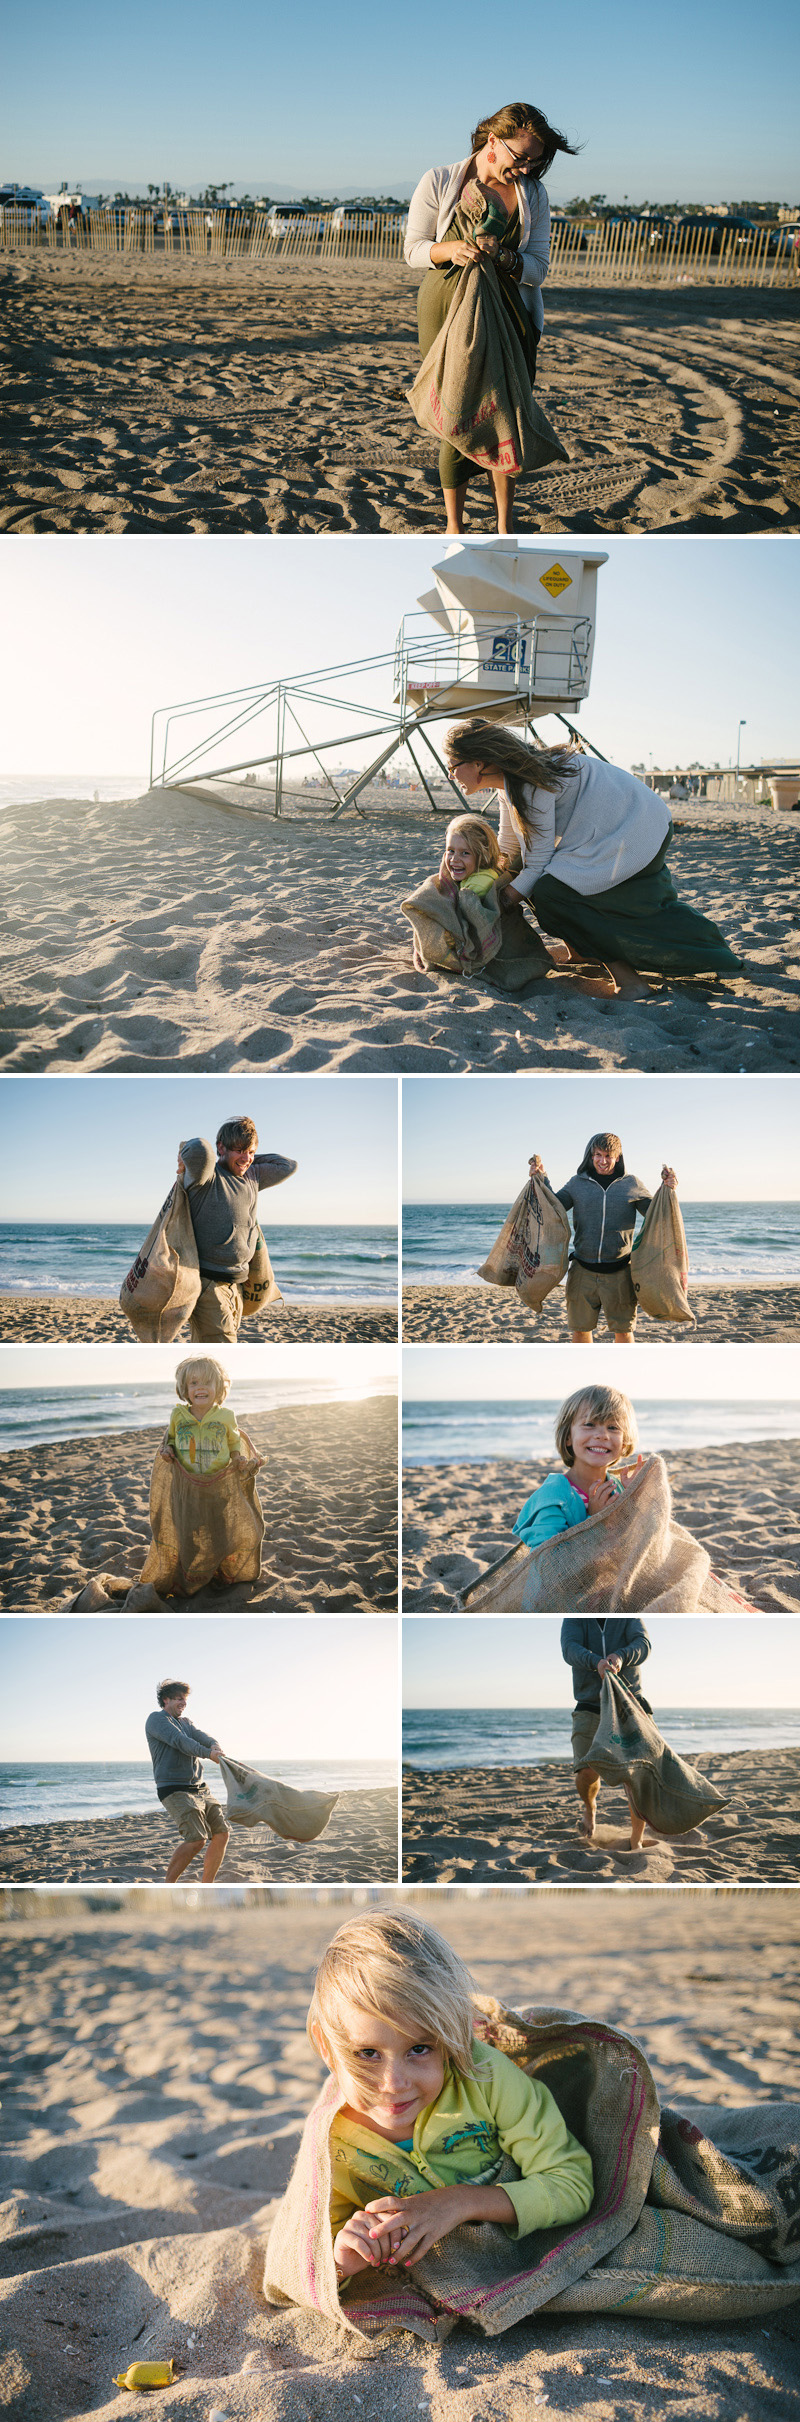 fun with potato sacks at the beach